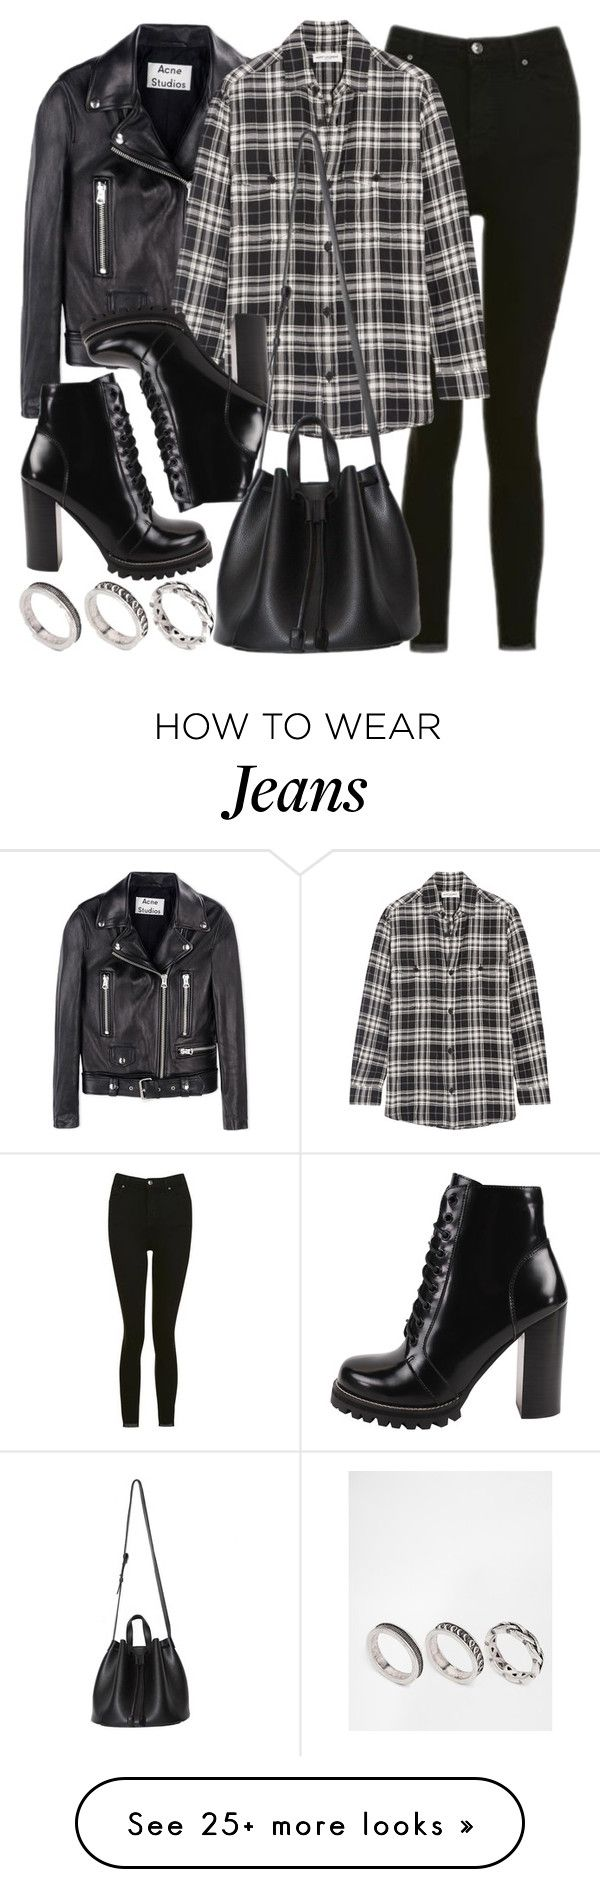 """Style #11661"" by vany-alvarado on Polyvore featuring Acne Studios, Topshop, Yves Saint Laurent, Jeffrey Campbell and ASOS"